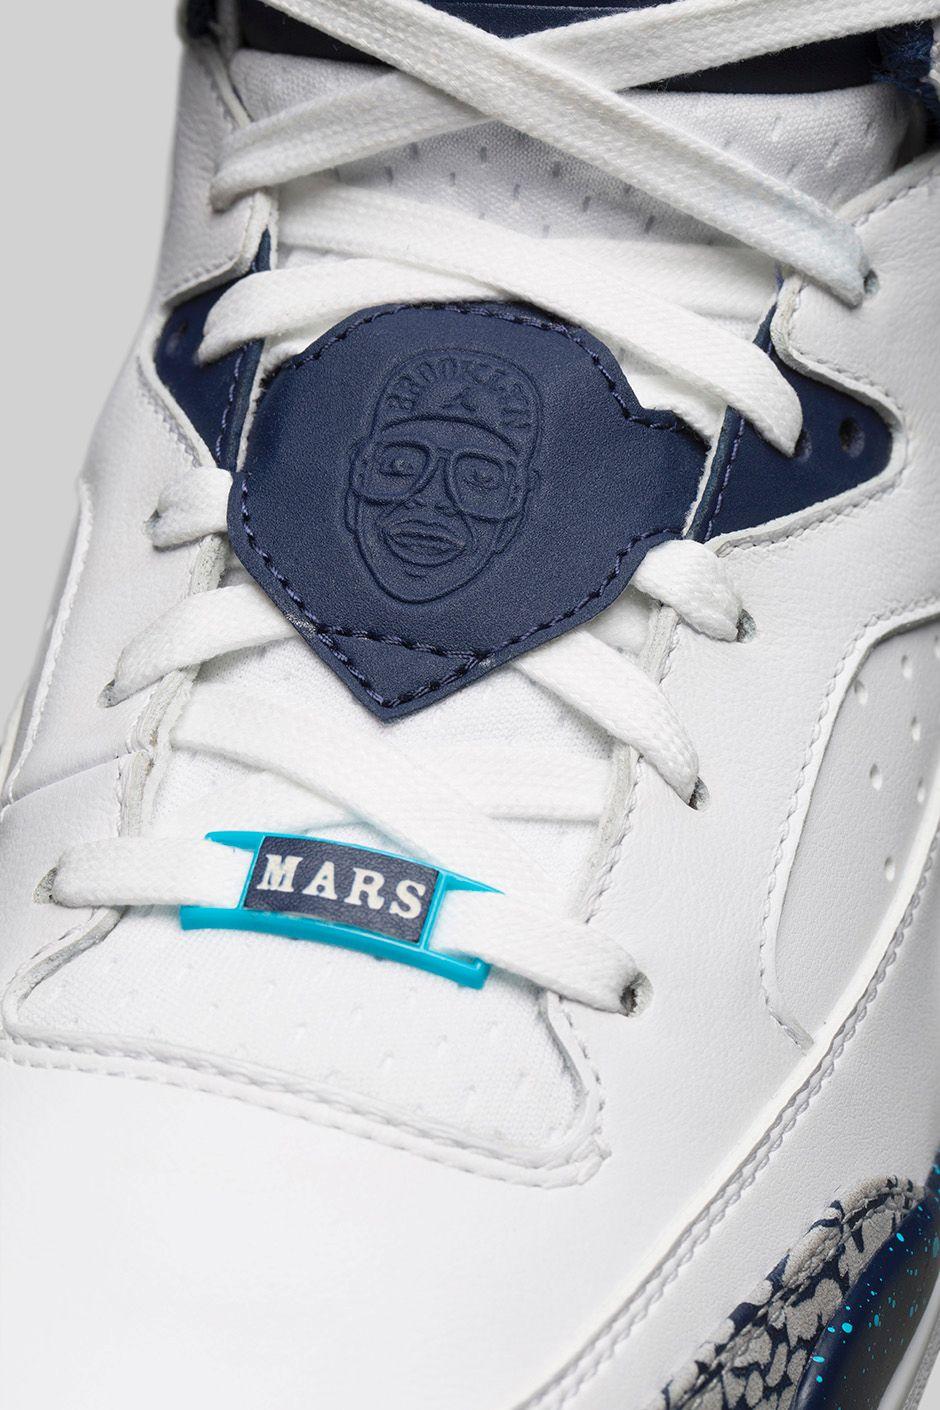 ad07a815b7a8a5 Air Jordan Son of Mars Low  Hornets  - Available Now - WearTesters